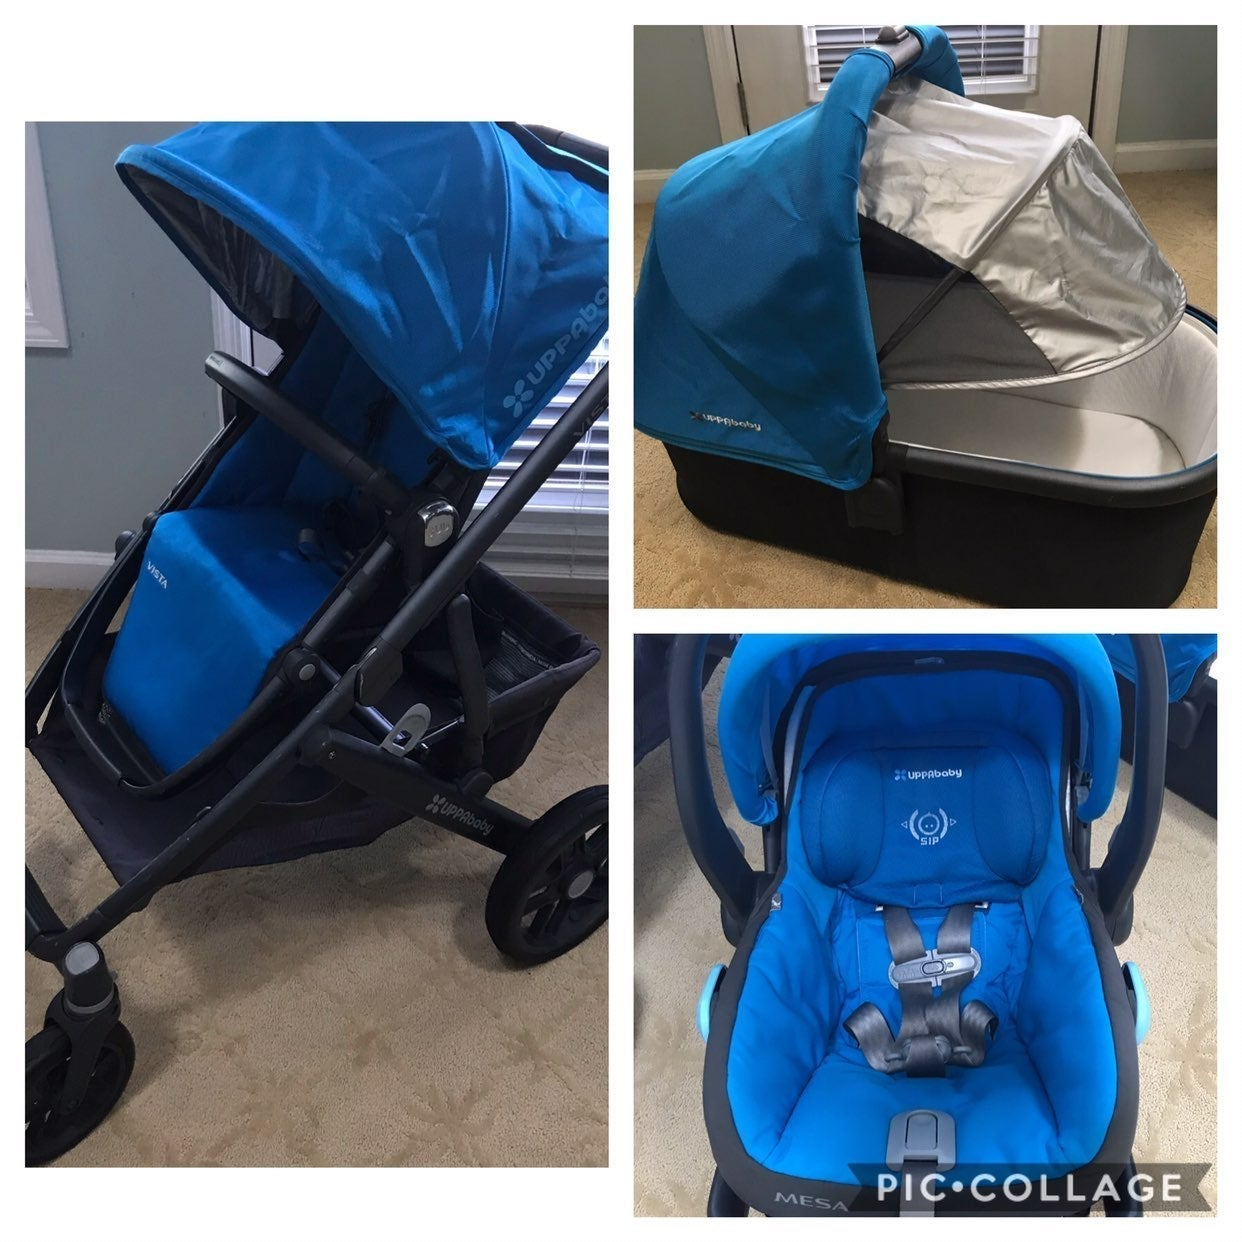 Uppababy Vista stroller wit Mesa carseat